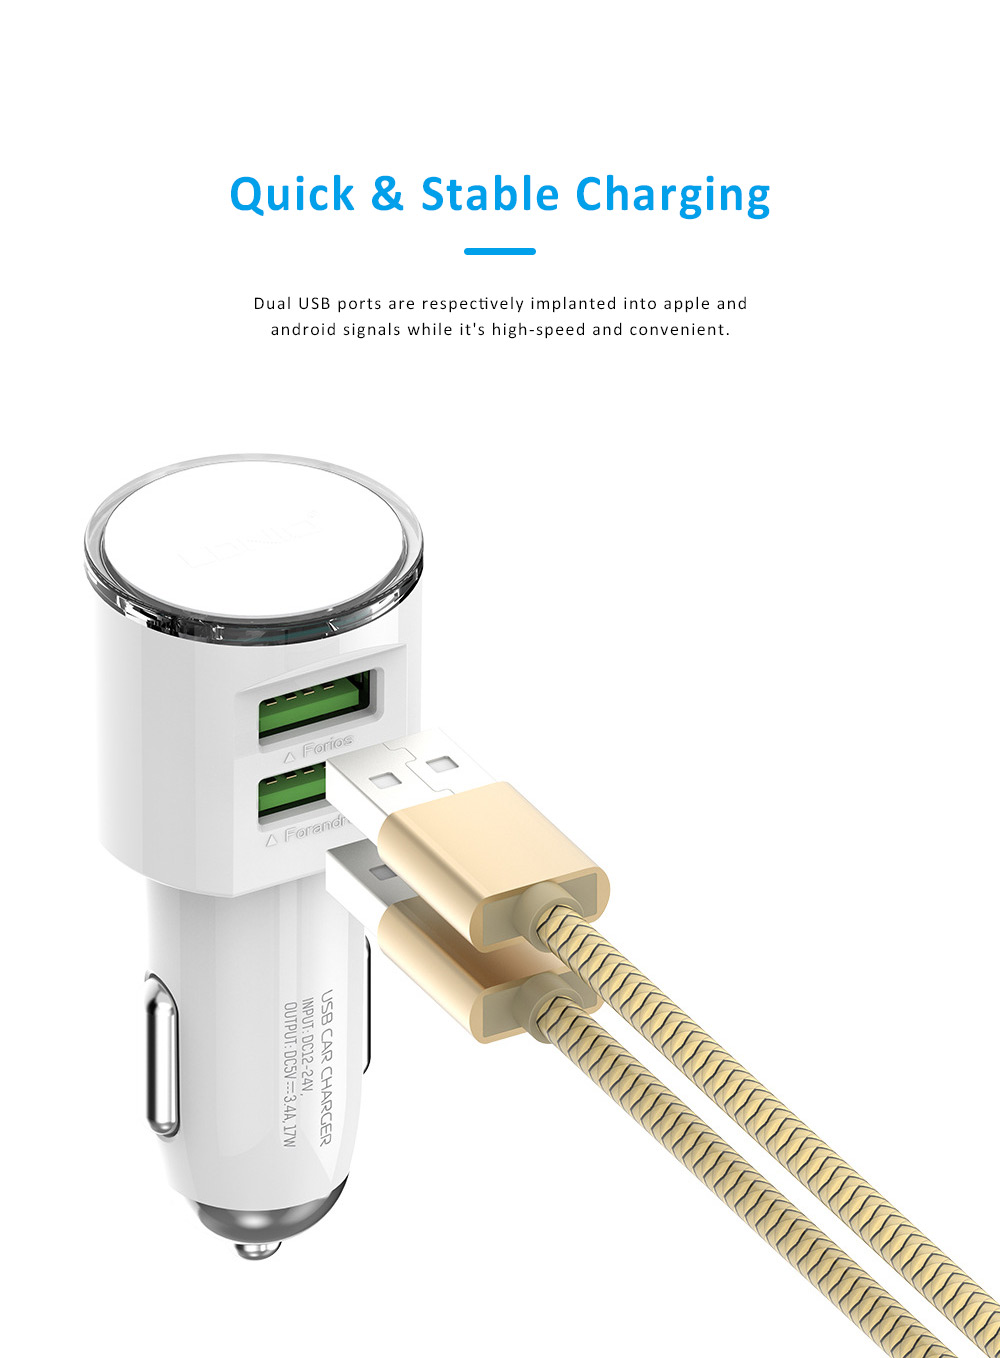 Dual USB 3.4A Zinc Alloy Mobile Phone Tablet Data Cable Car Charger with Intelligent Protection 1